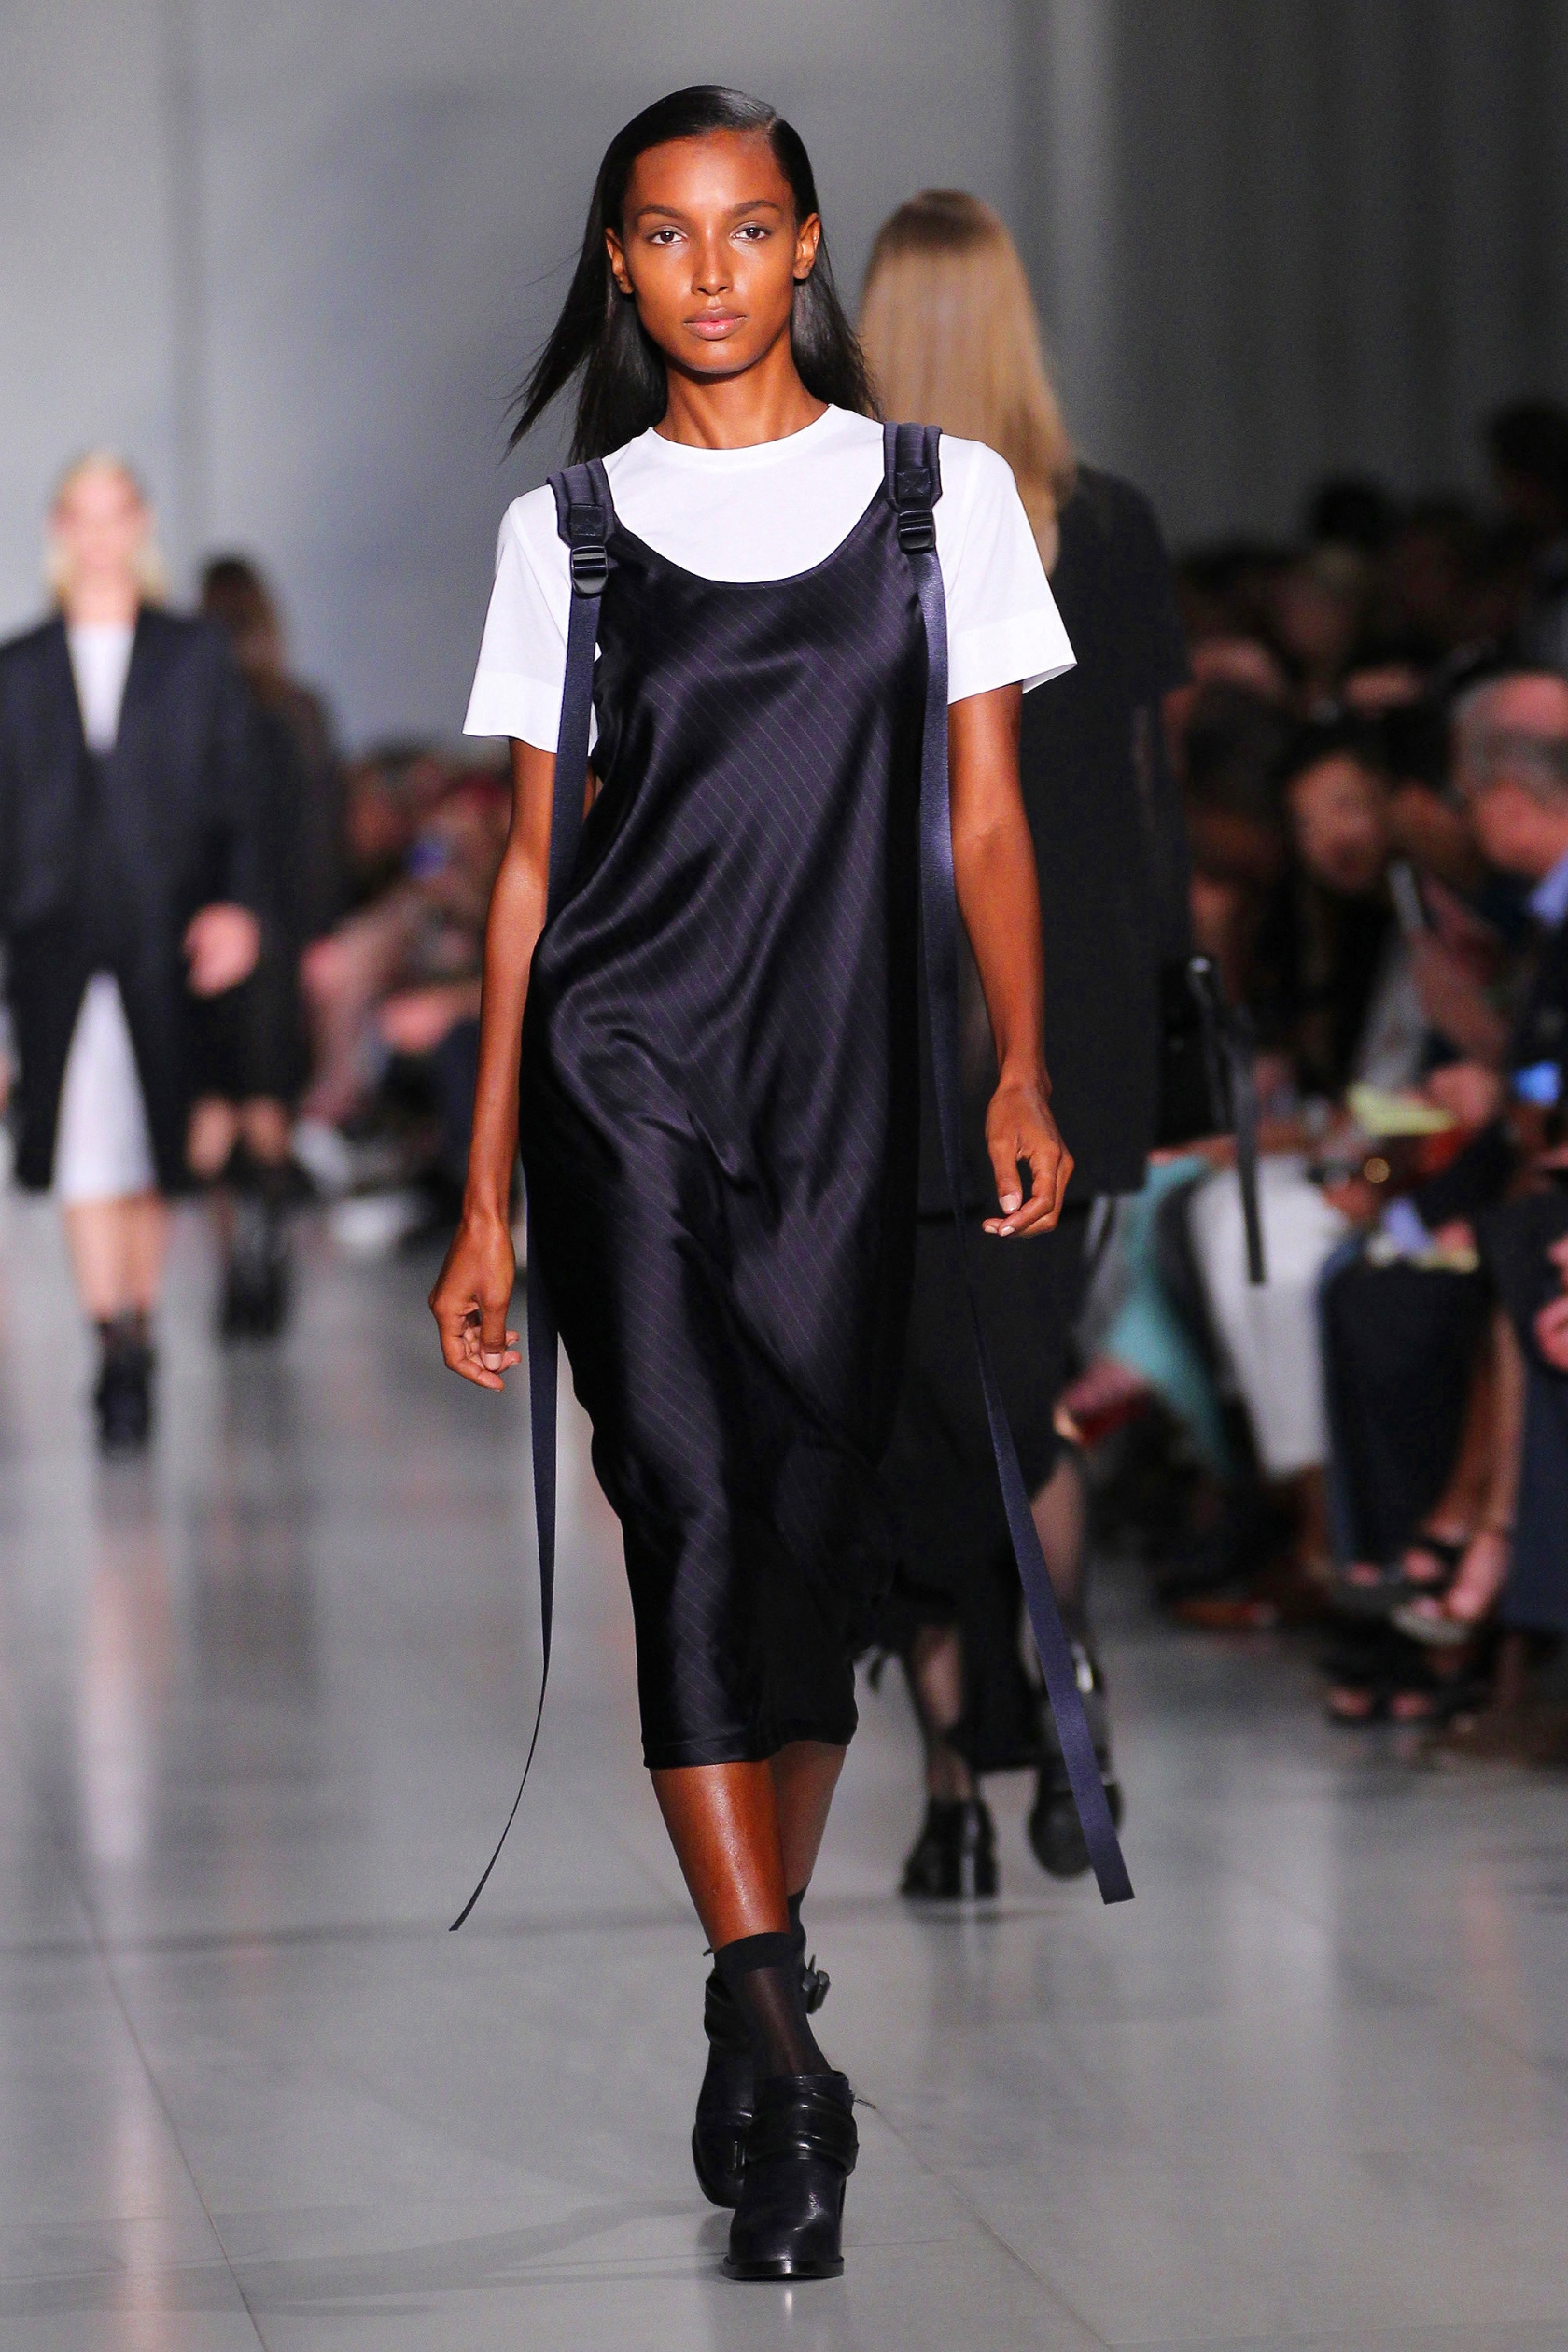 DKNY Women's - Runway - Spring 2016 New York Fashion Week: The Shows